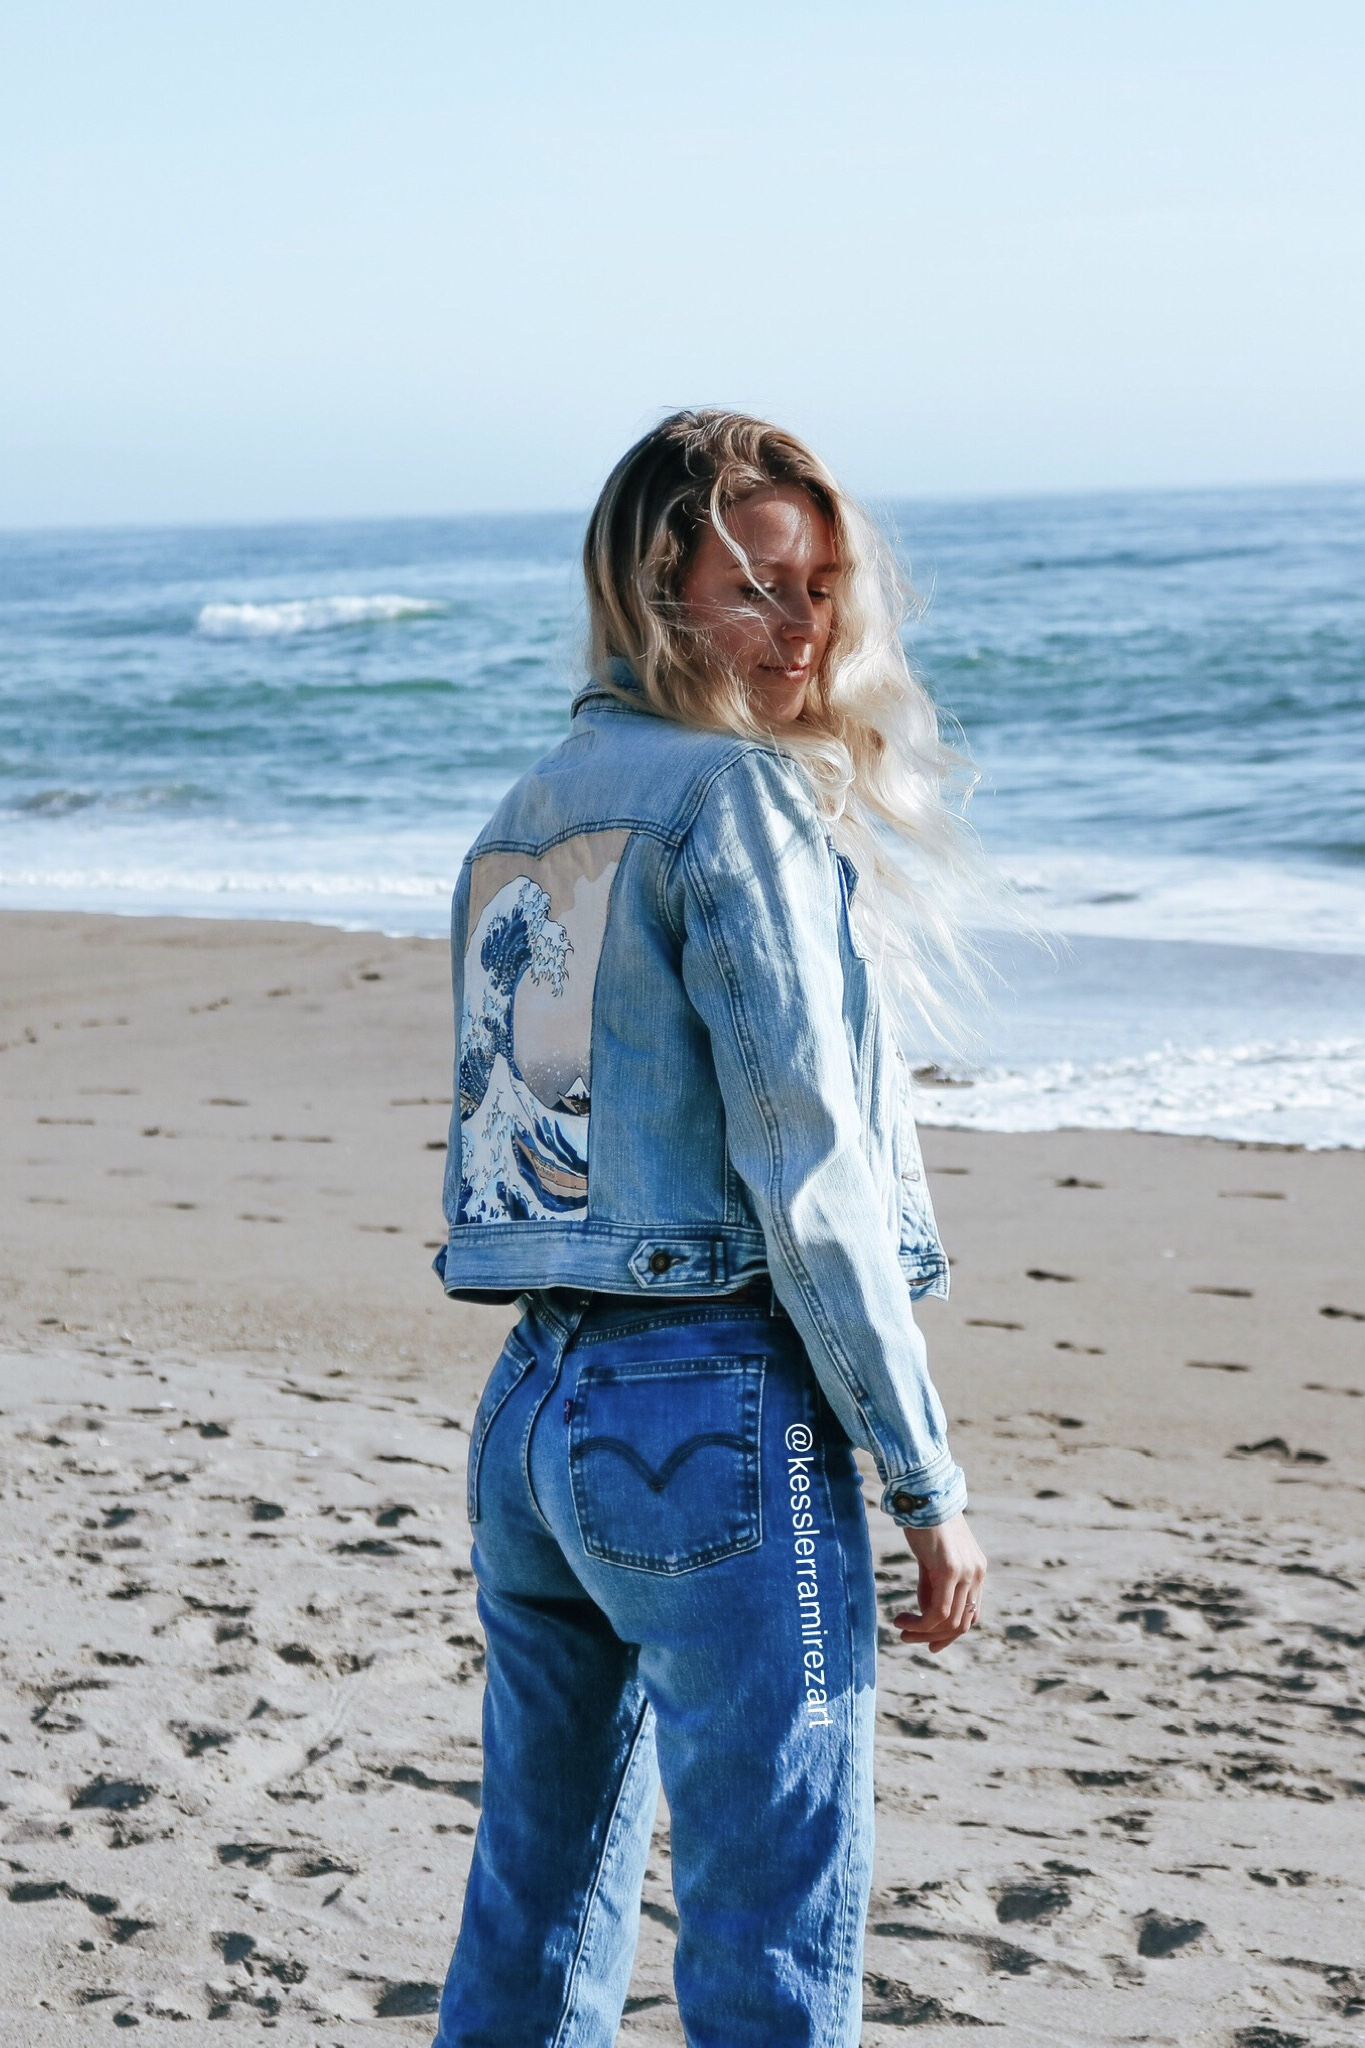 my painted denim business - Most of my time lately is spent painting on jeans and denim jackets. It has been such a fun experience creating an art business and growing my community on Instagram.